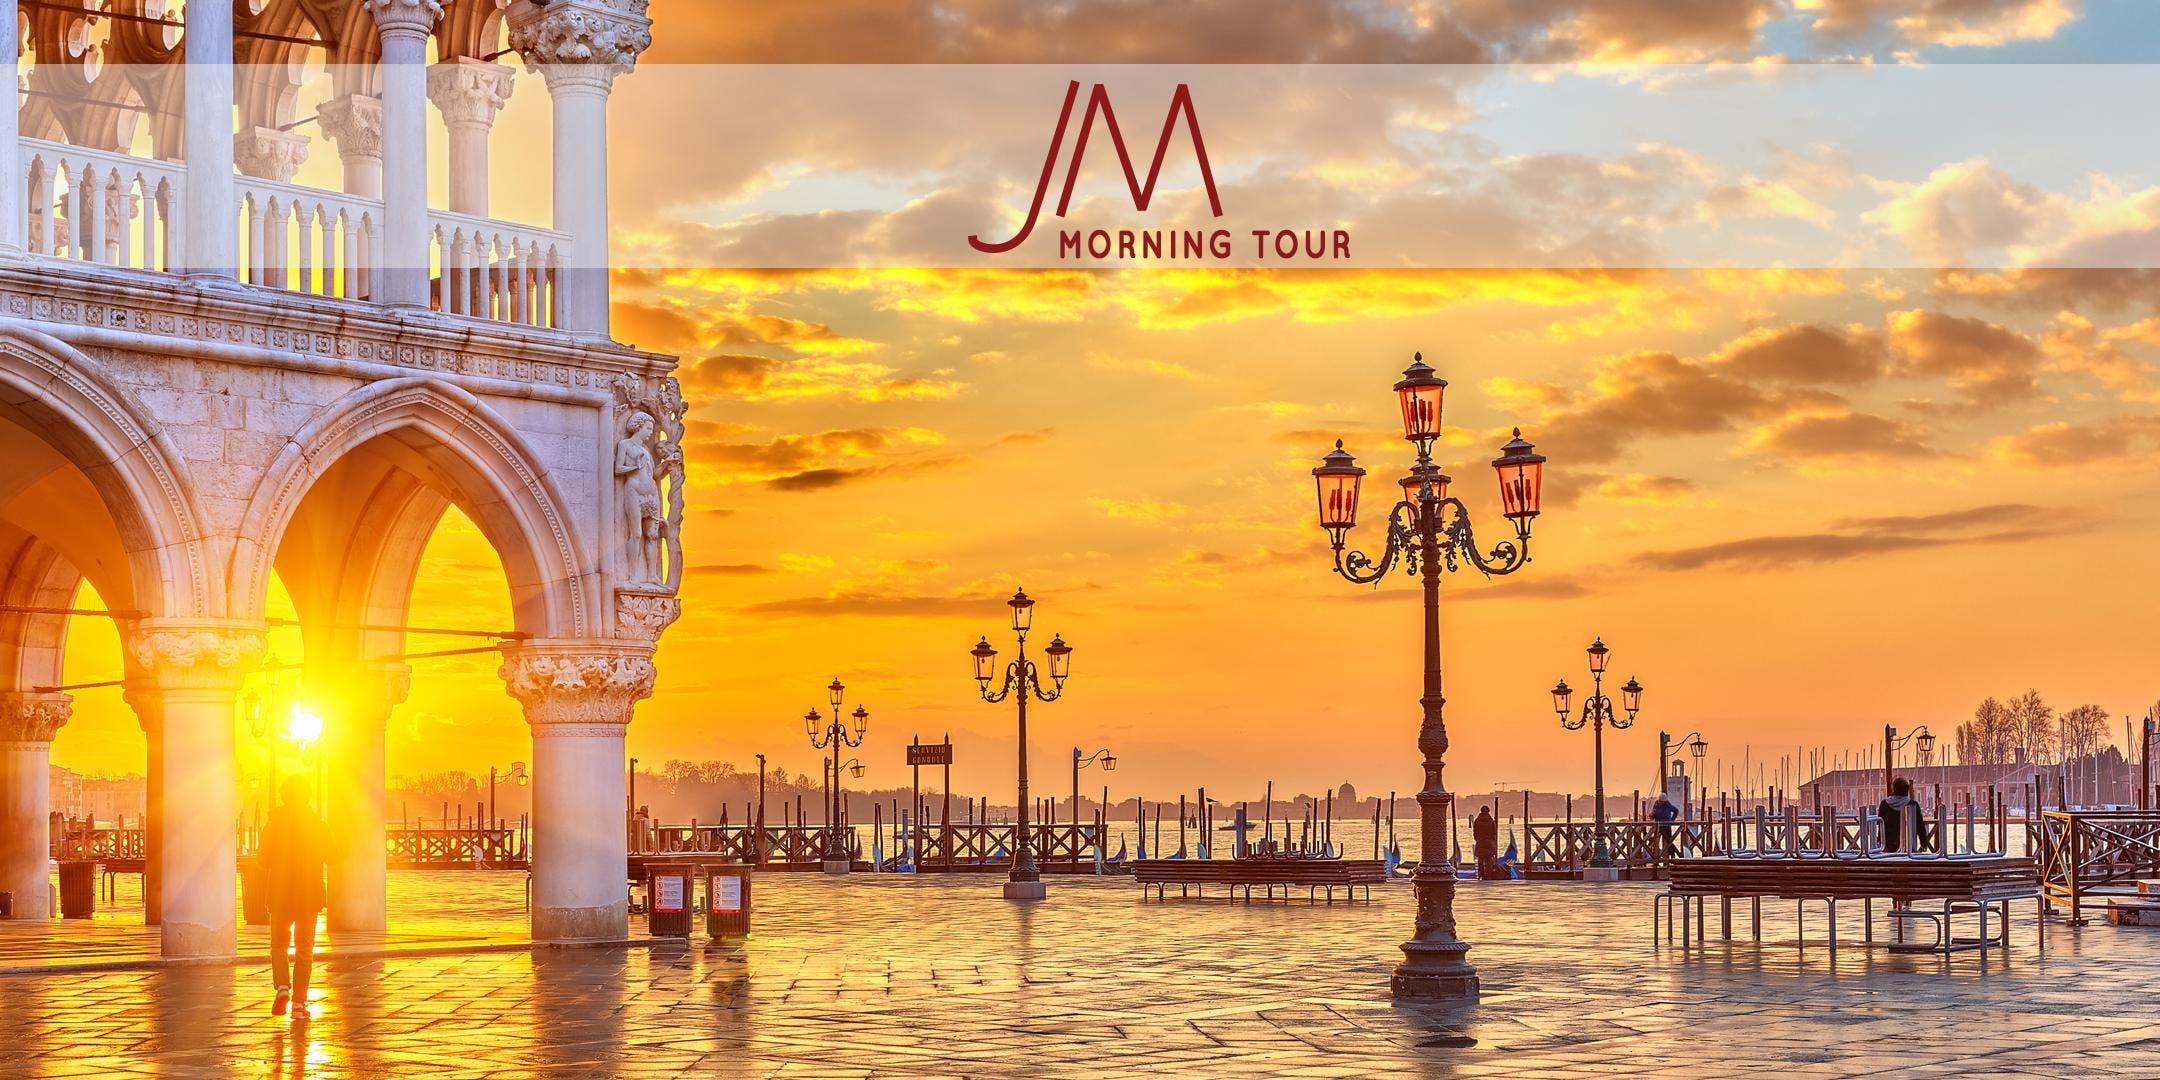 VENICE FREE MORNING TOUR